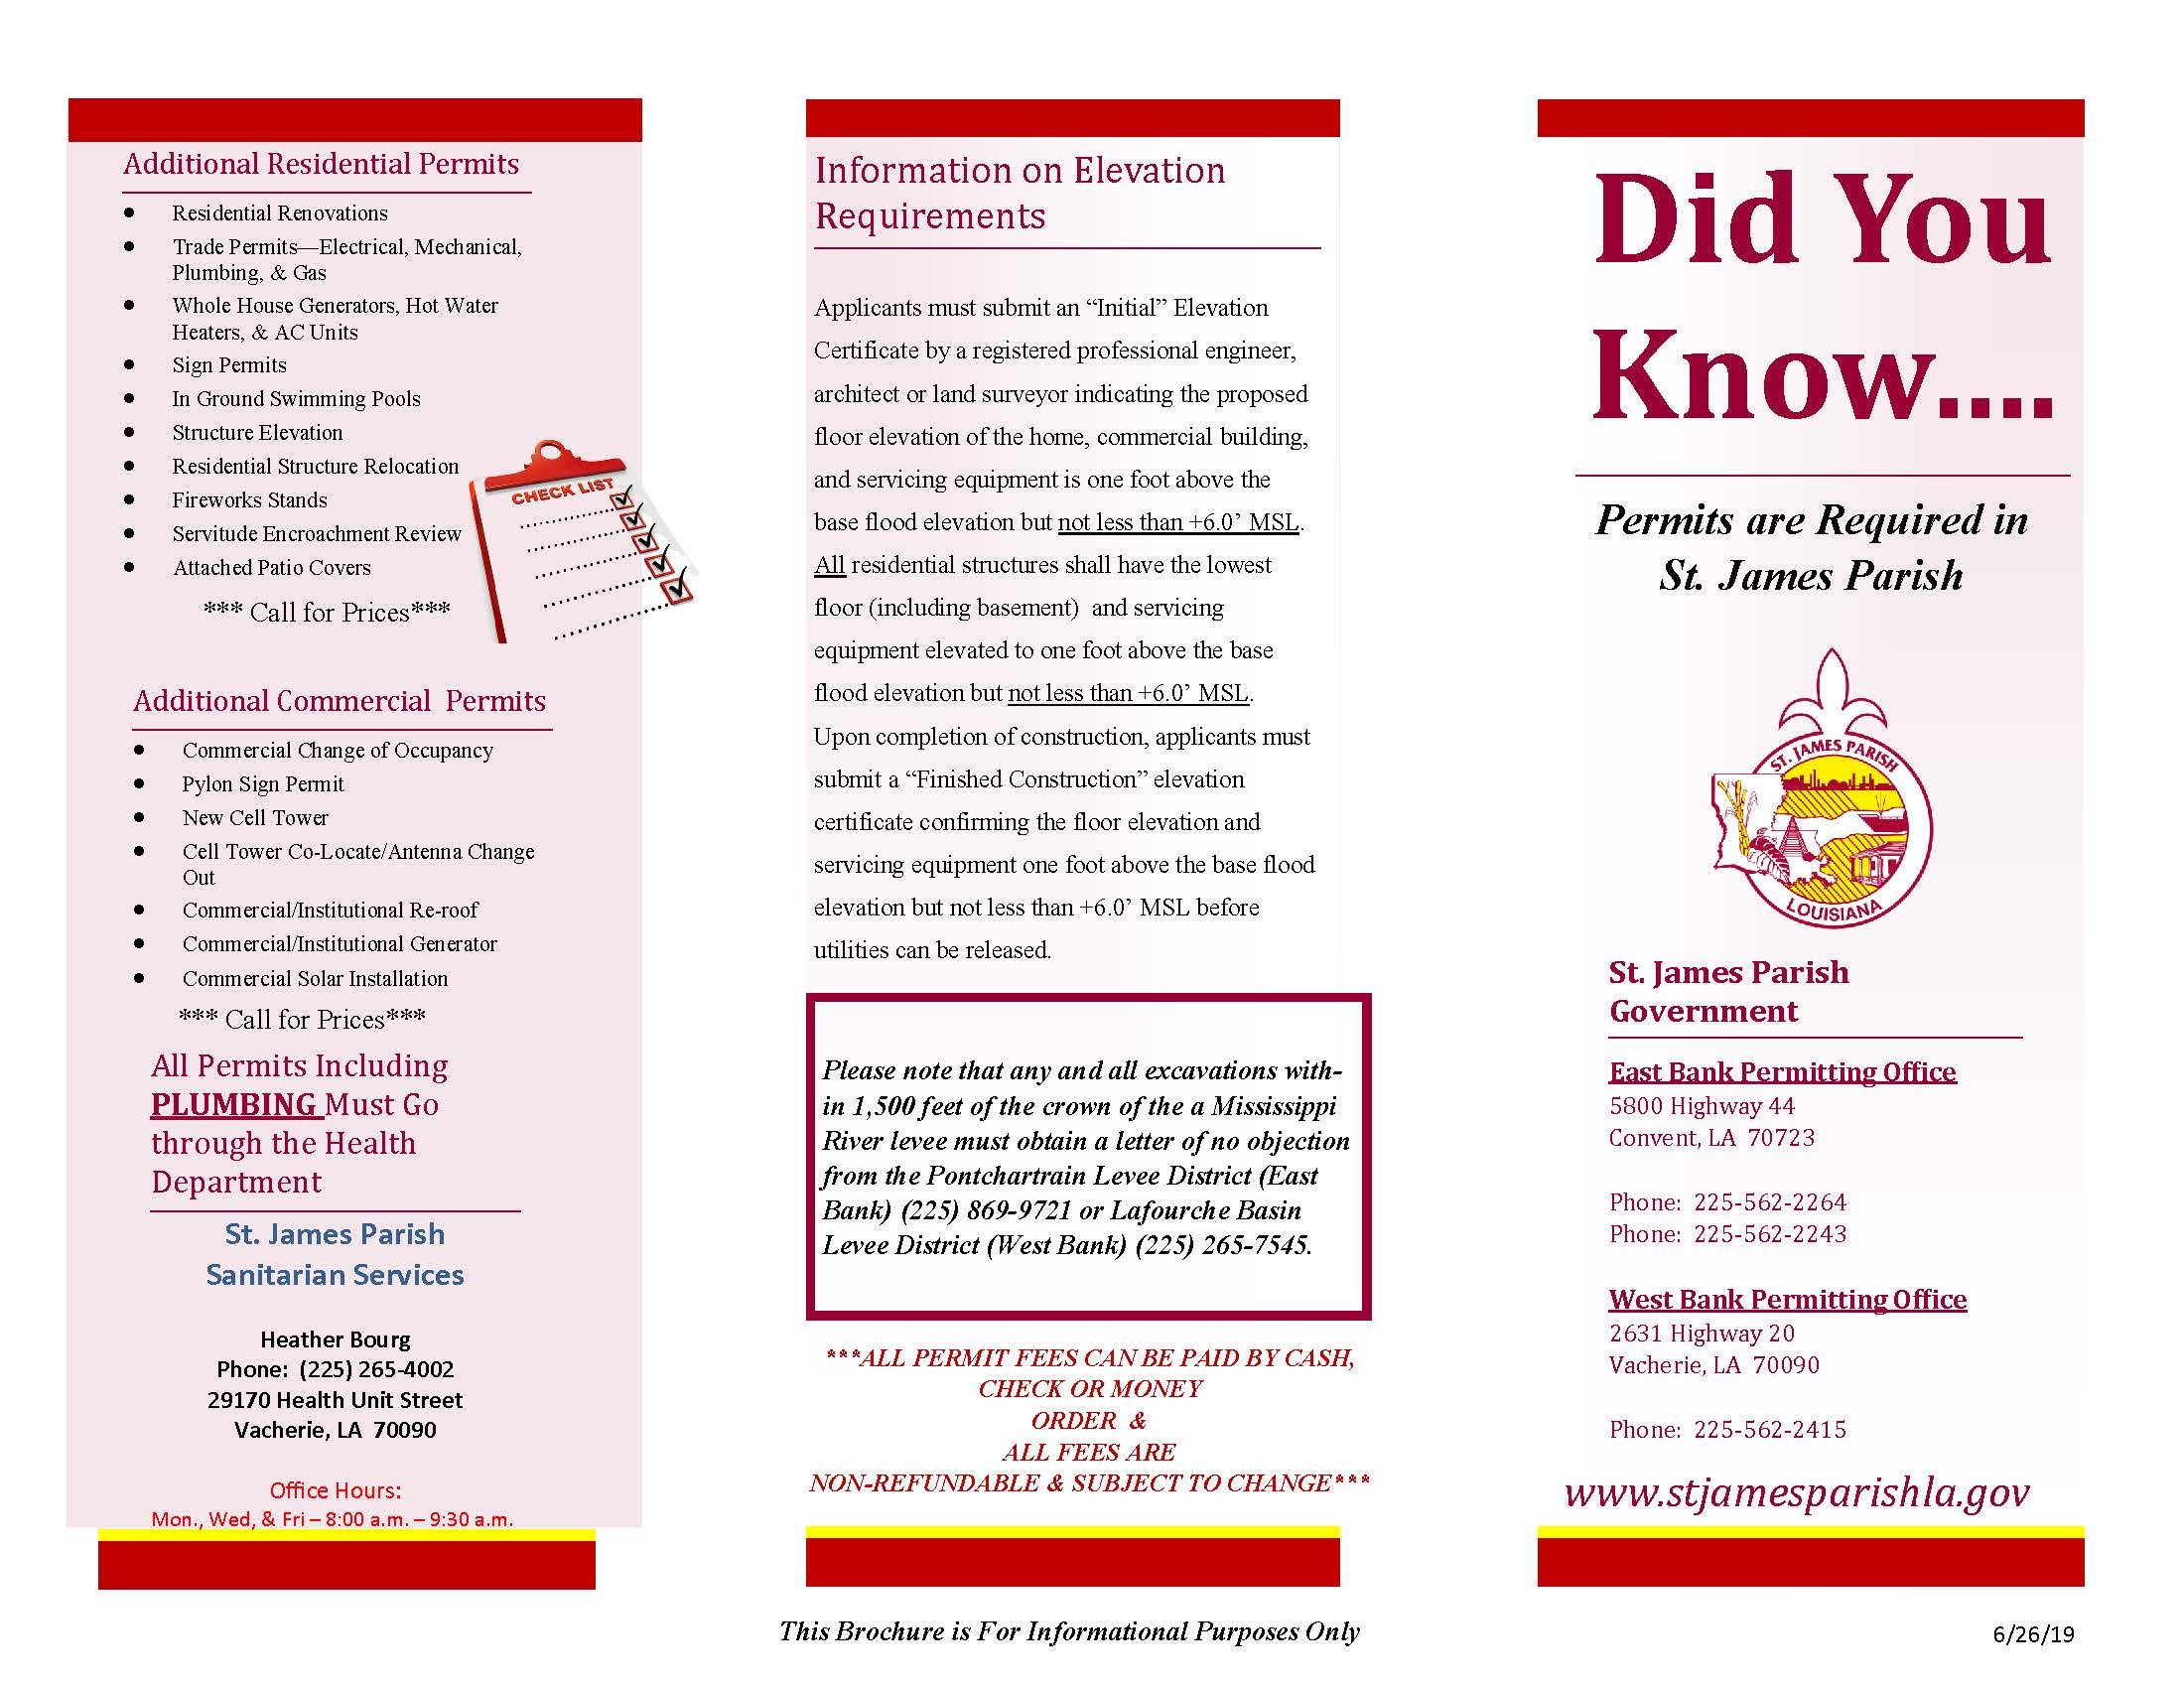 Did You Know Brochure_Page_1